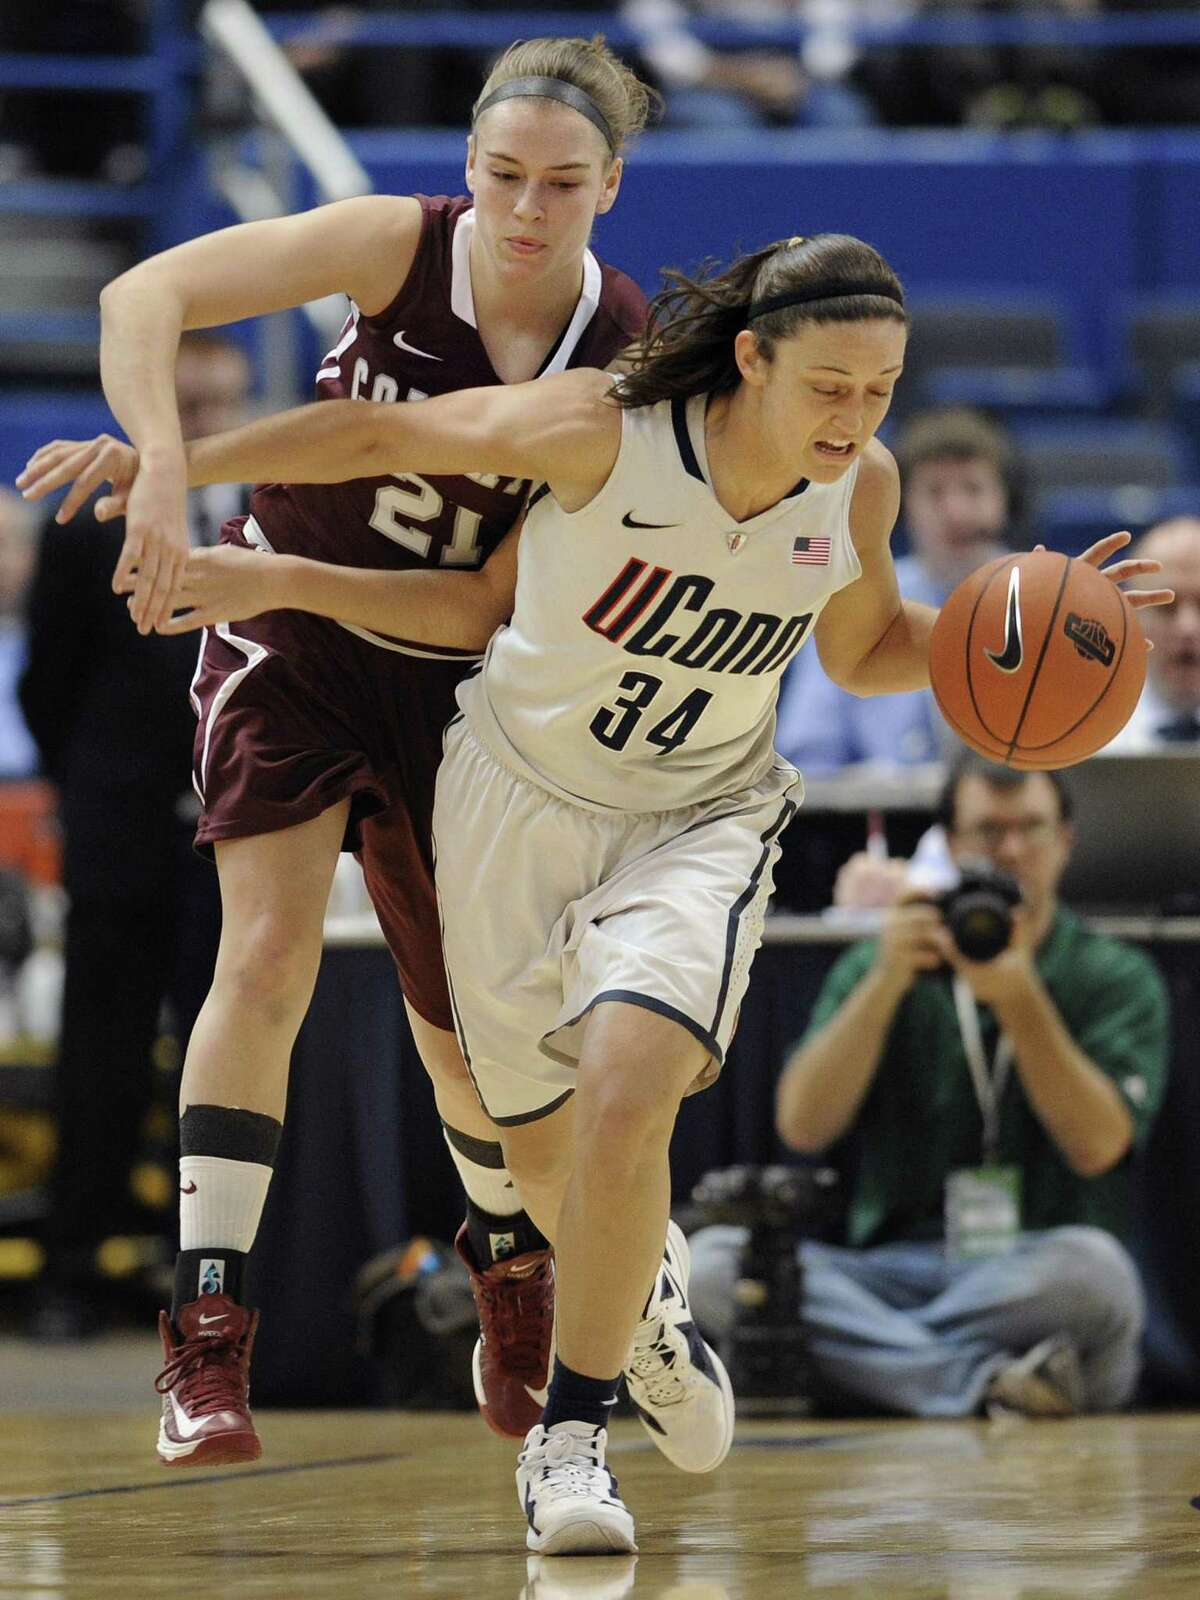 Connecticut's Kelly Faris, right, intercepts a pass intended for Colgate's Missy Repoli, left, during the first half of a NCAA college basketball game in Hartford, Conn., Wednesday, Nov. 28, 2012. (AP Photo/Jessica Hill)